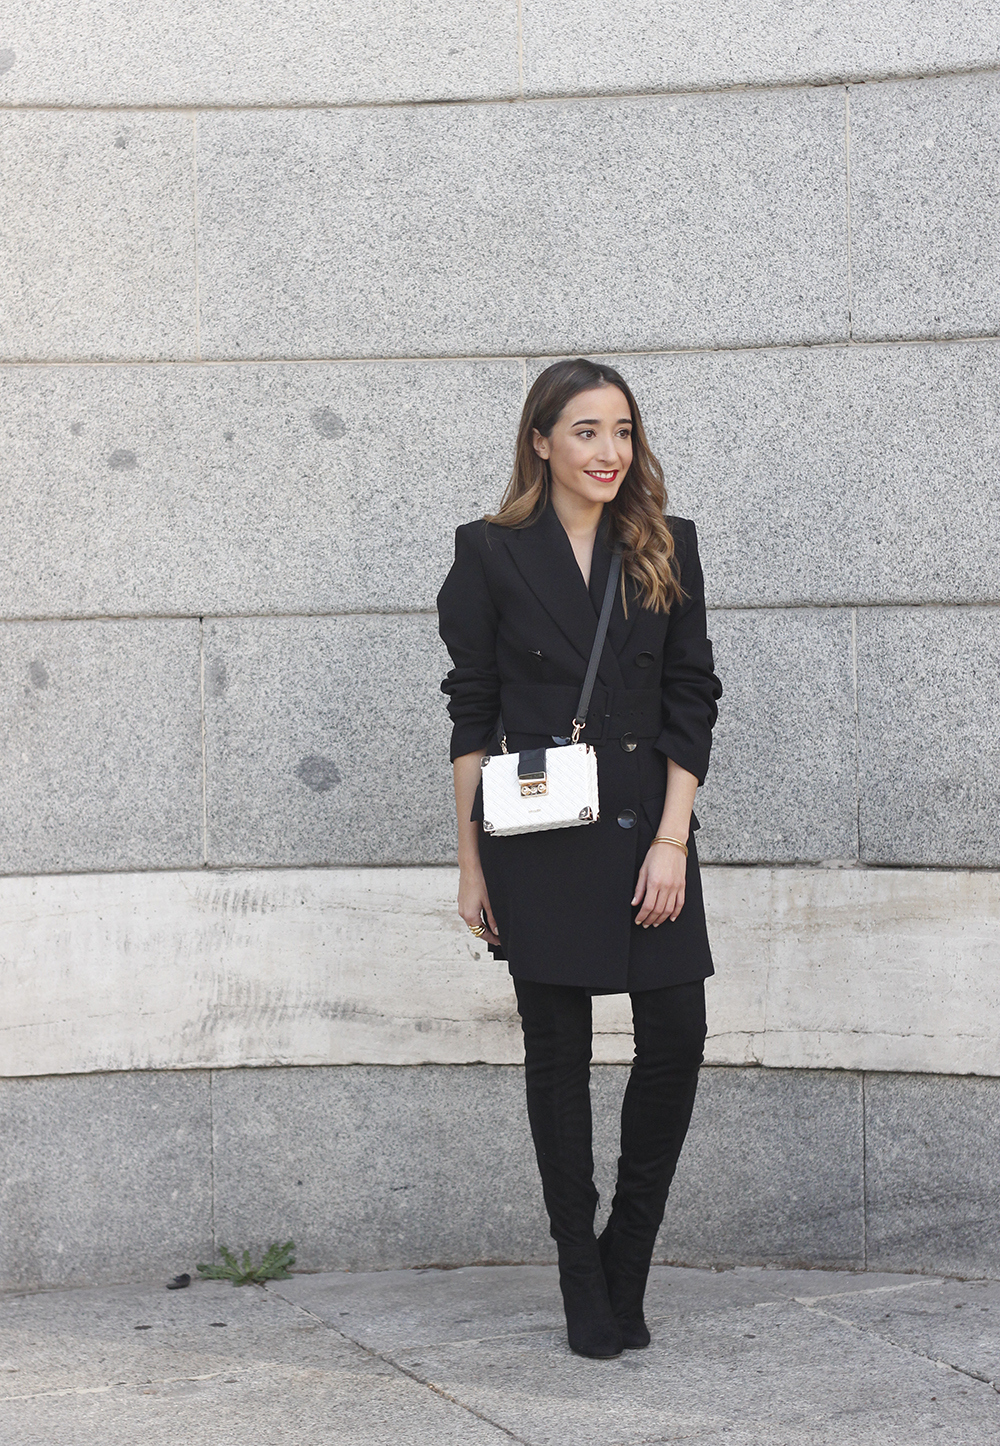 Black Blazer dress over the knee boots outfit uterqüe fashion style outfit autumn04